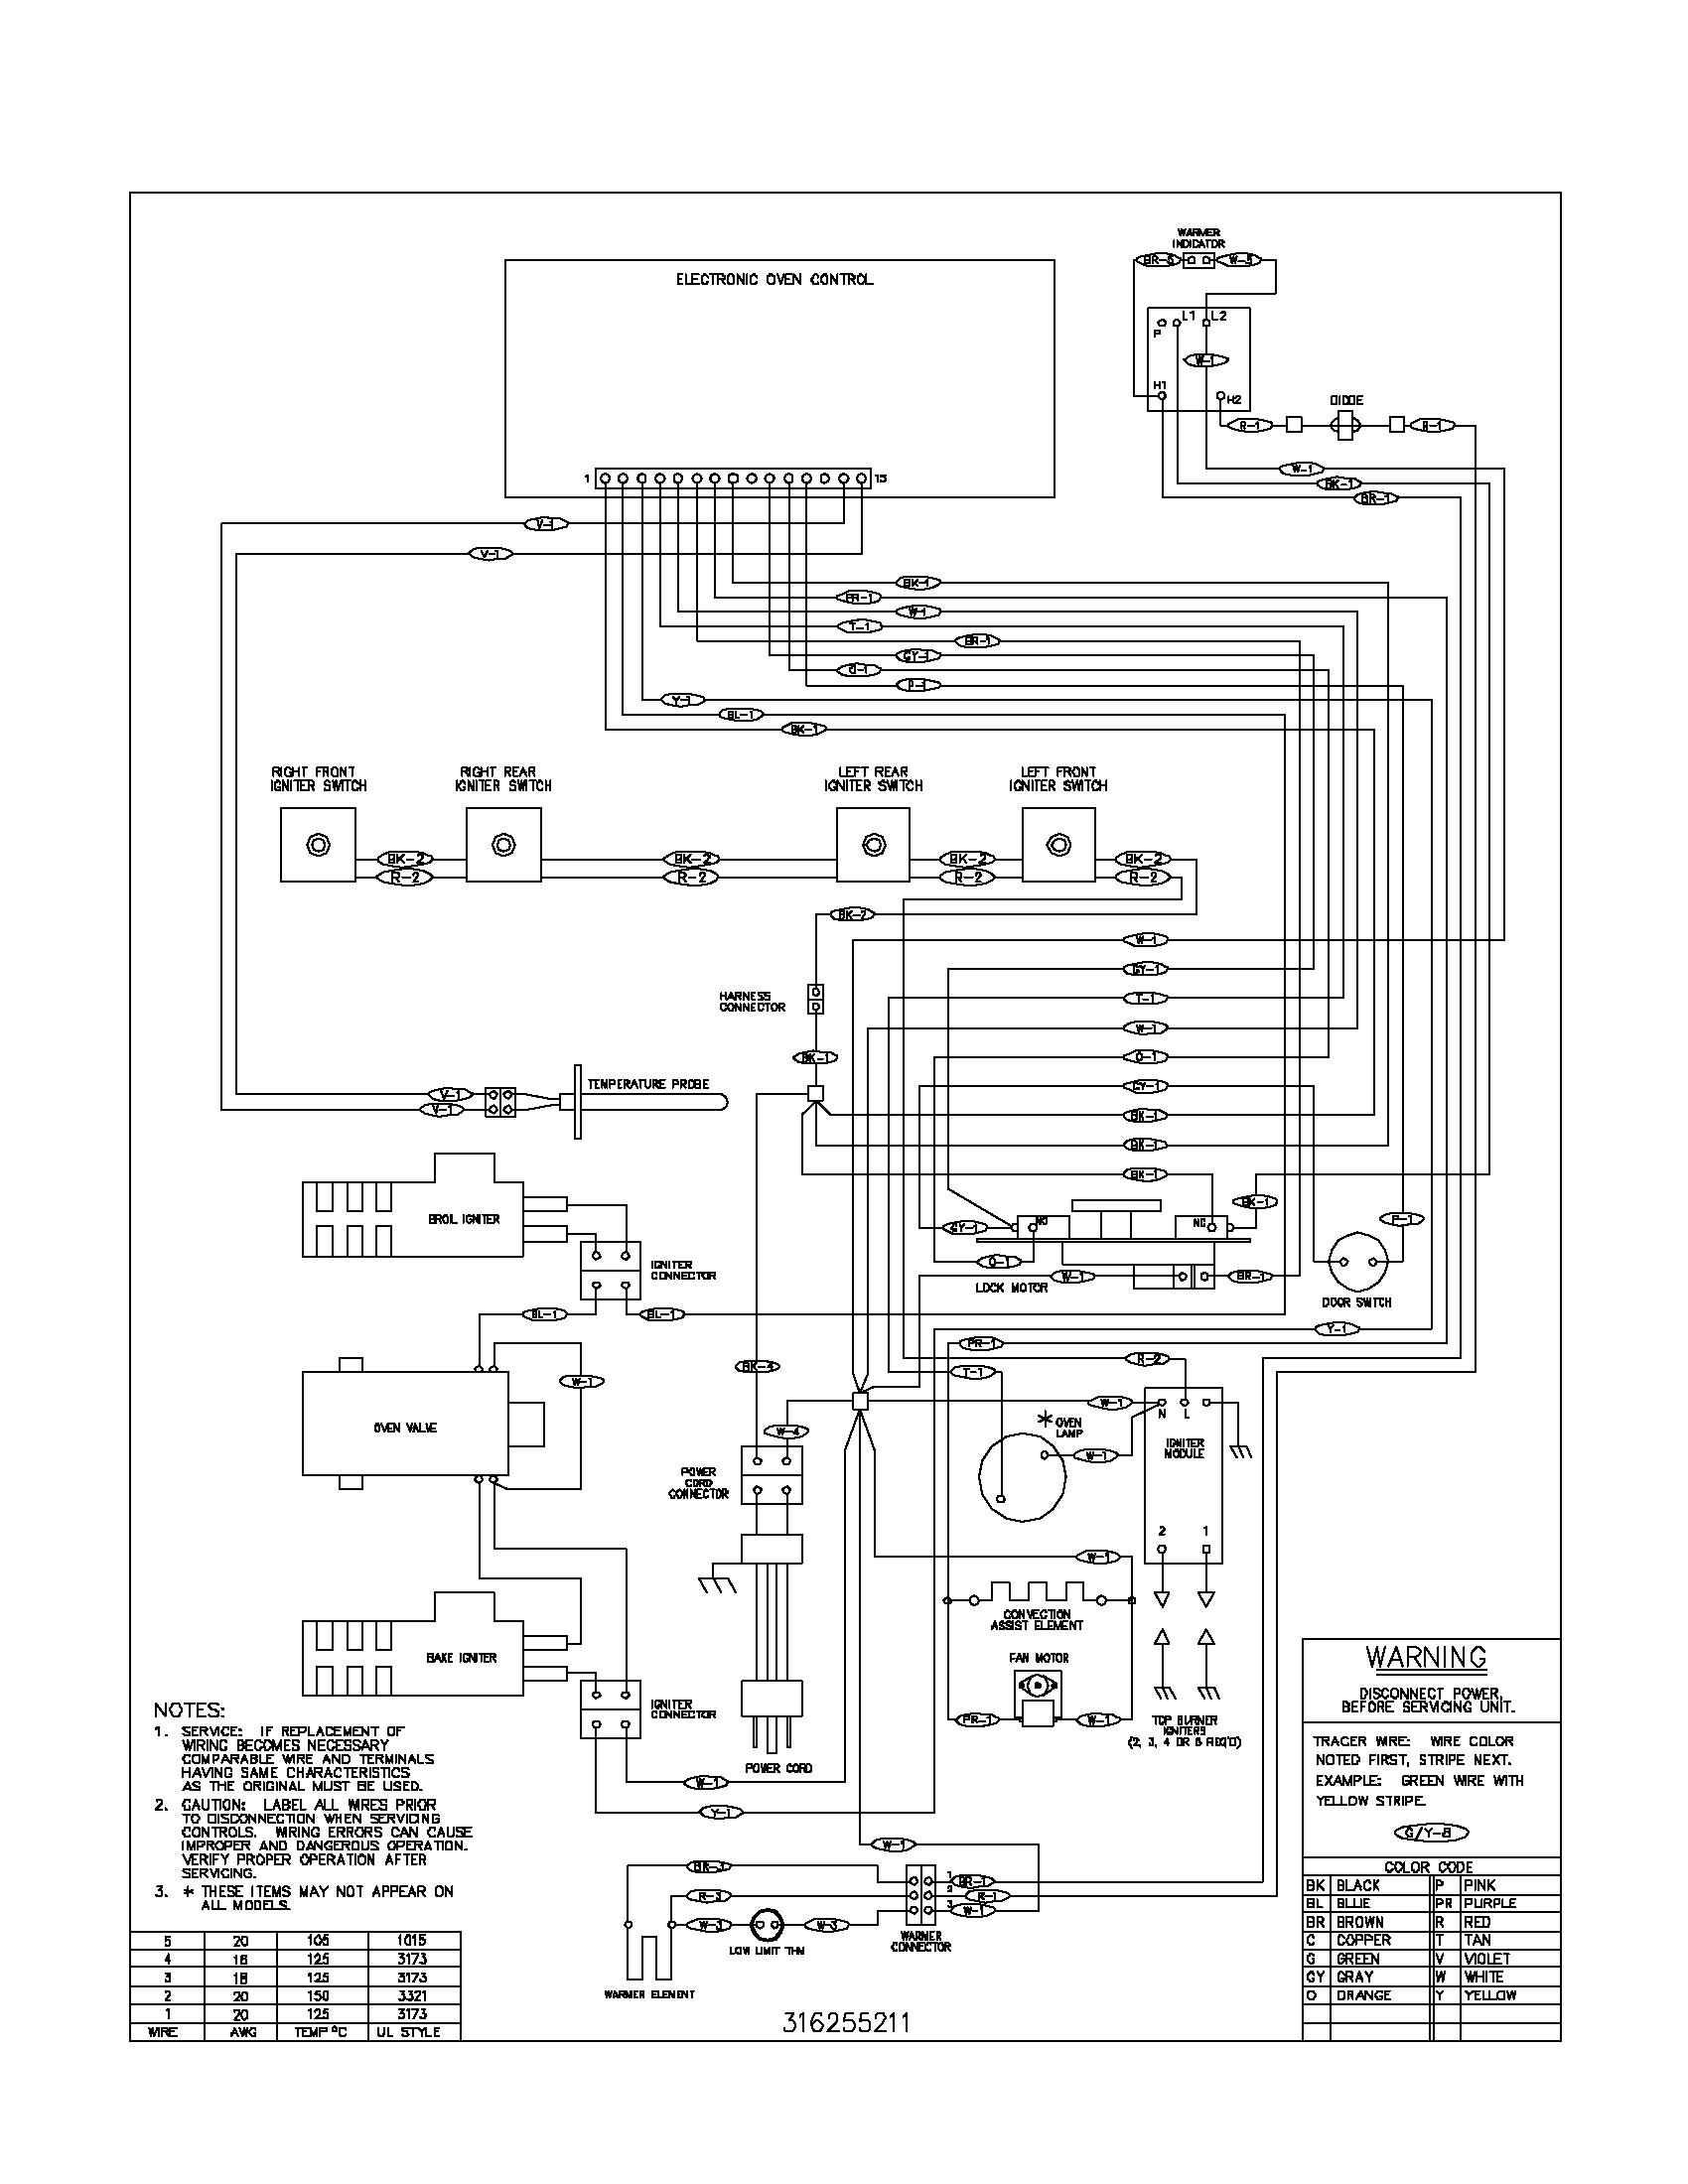 wiring diagram parts?resize\\\\\\\\\\\\\\\\\\\\\\\\\\\\\\\\\\\\\\\\\\\\\\\\\\\\\\\=665%2C861\\\\\\\\\\\\\\\\\\\\\\\\\\\\\\\\\\\\\\\\\\\\\\\\\\\\\\\&ssl\\\\\\\\\\\\\\\\\\\\\\\\\\\\\\\\\\\\\\\\\\\\\\\\\\\\\\\=1 wiring diagram whirlpool dishwasher whirlpool dishwasher repair  at eliteediting.co